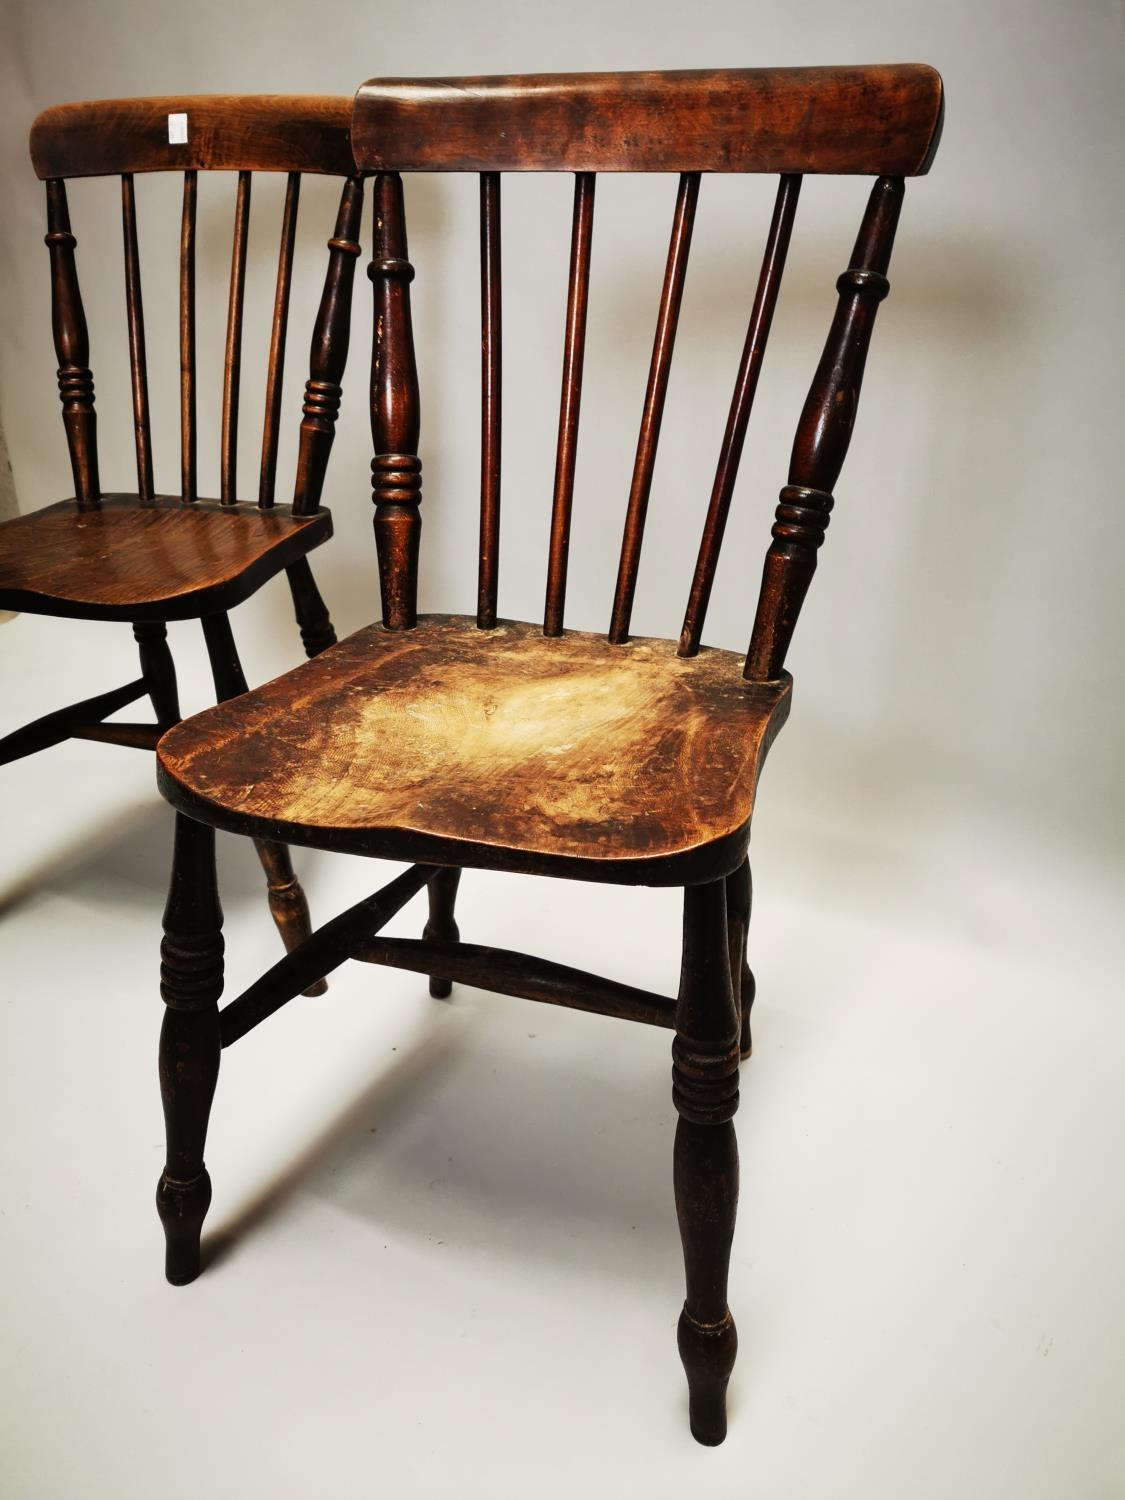 Pair of 19th C. pine and elm kitchen chairs - Image 6 of 8